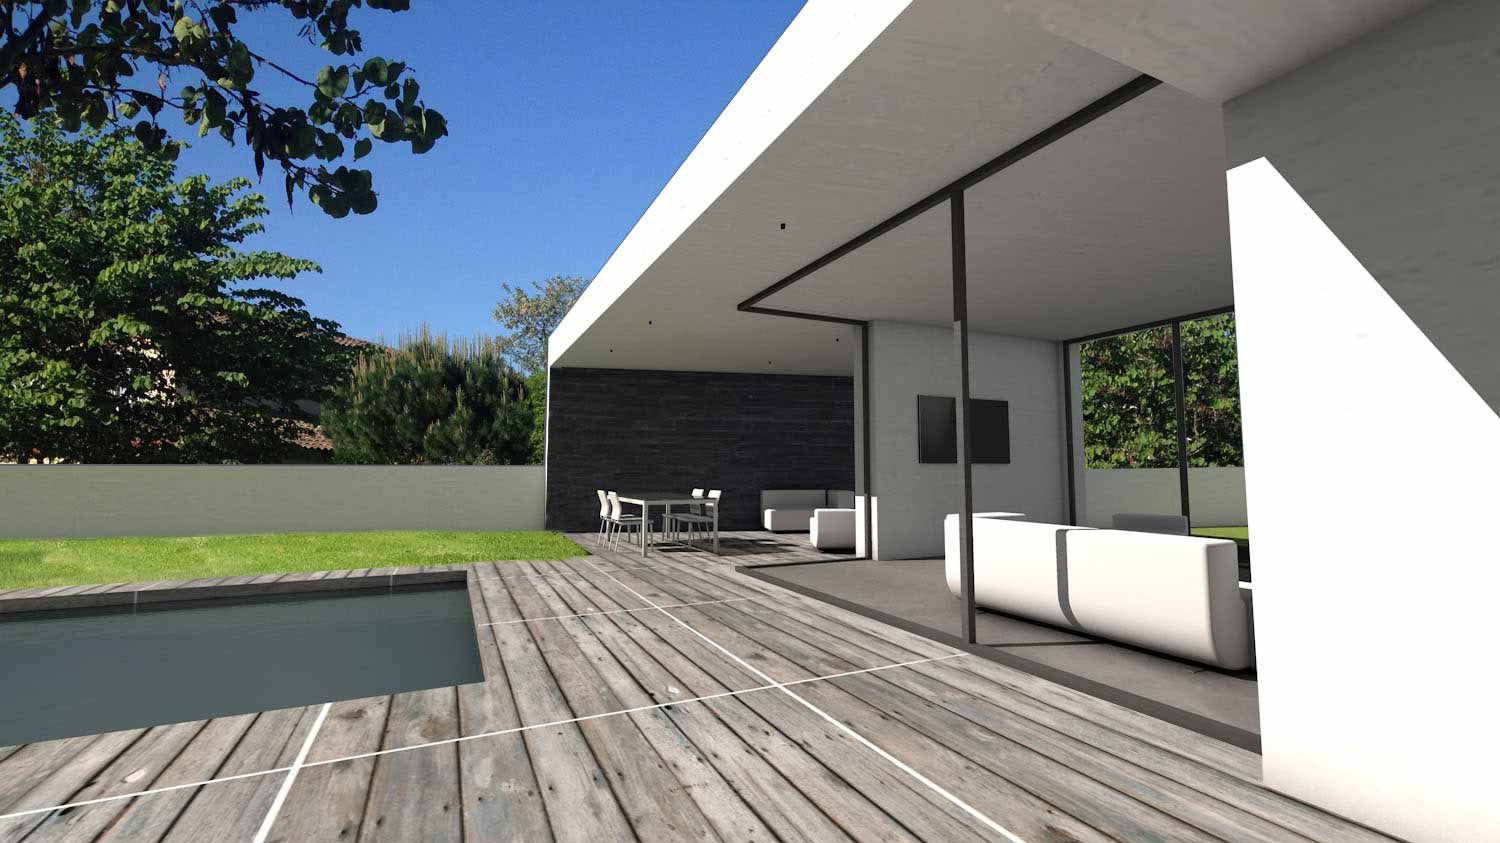 Atelier d 39 architecture sc nario maison contemporaine d for Maison contemporaine architecte